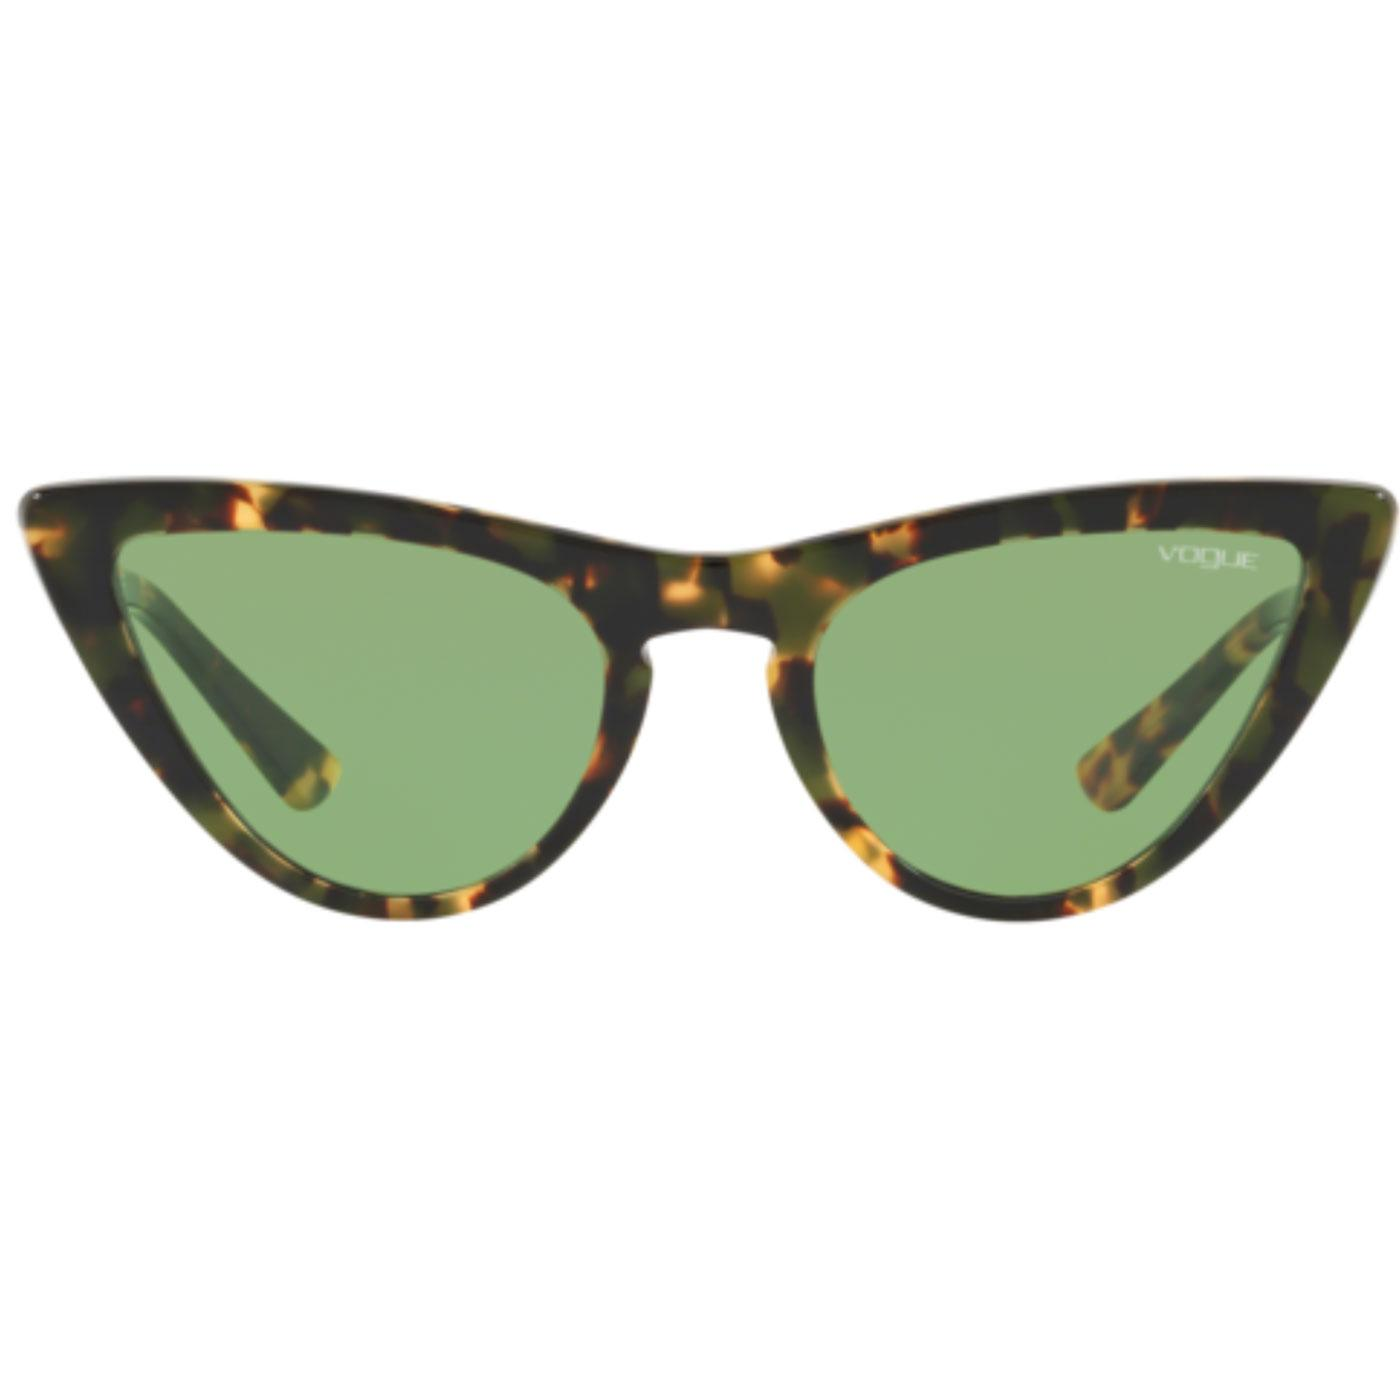 GIGI HADID x VOGUE Retro 50s Cats-Eye Sunglasses T